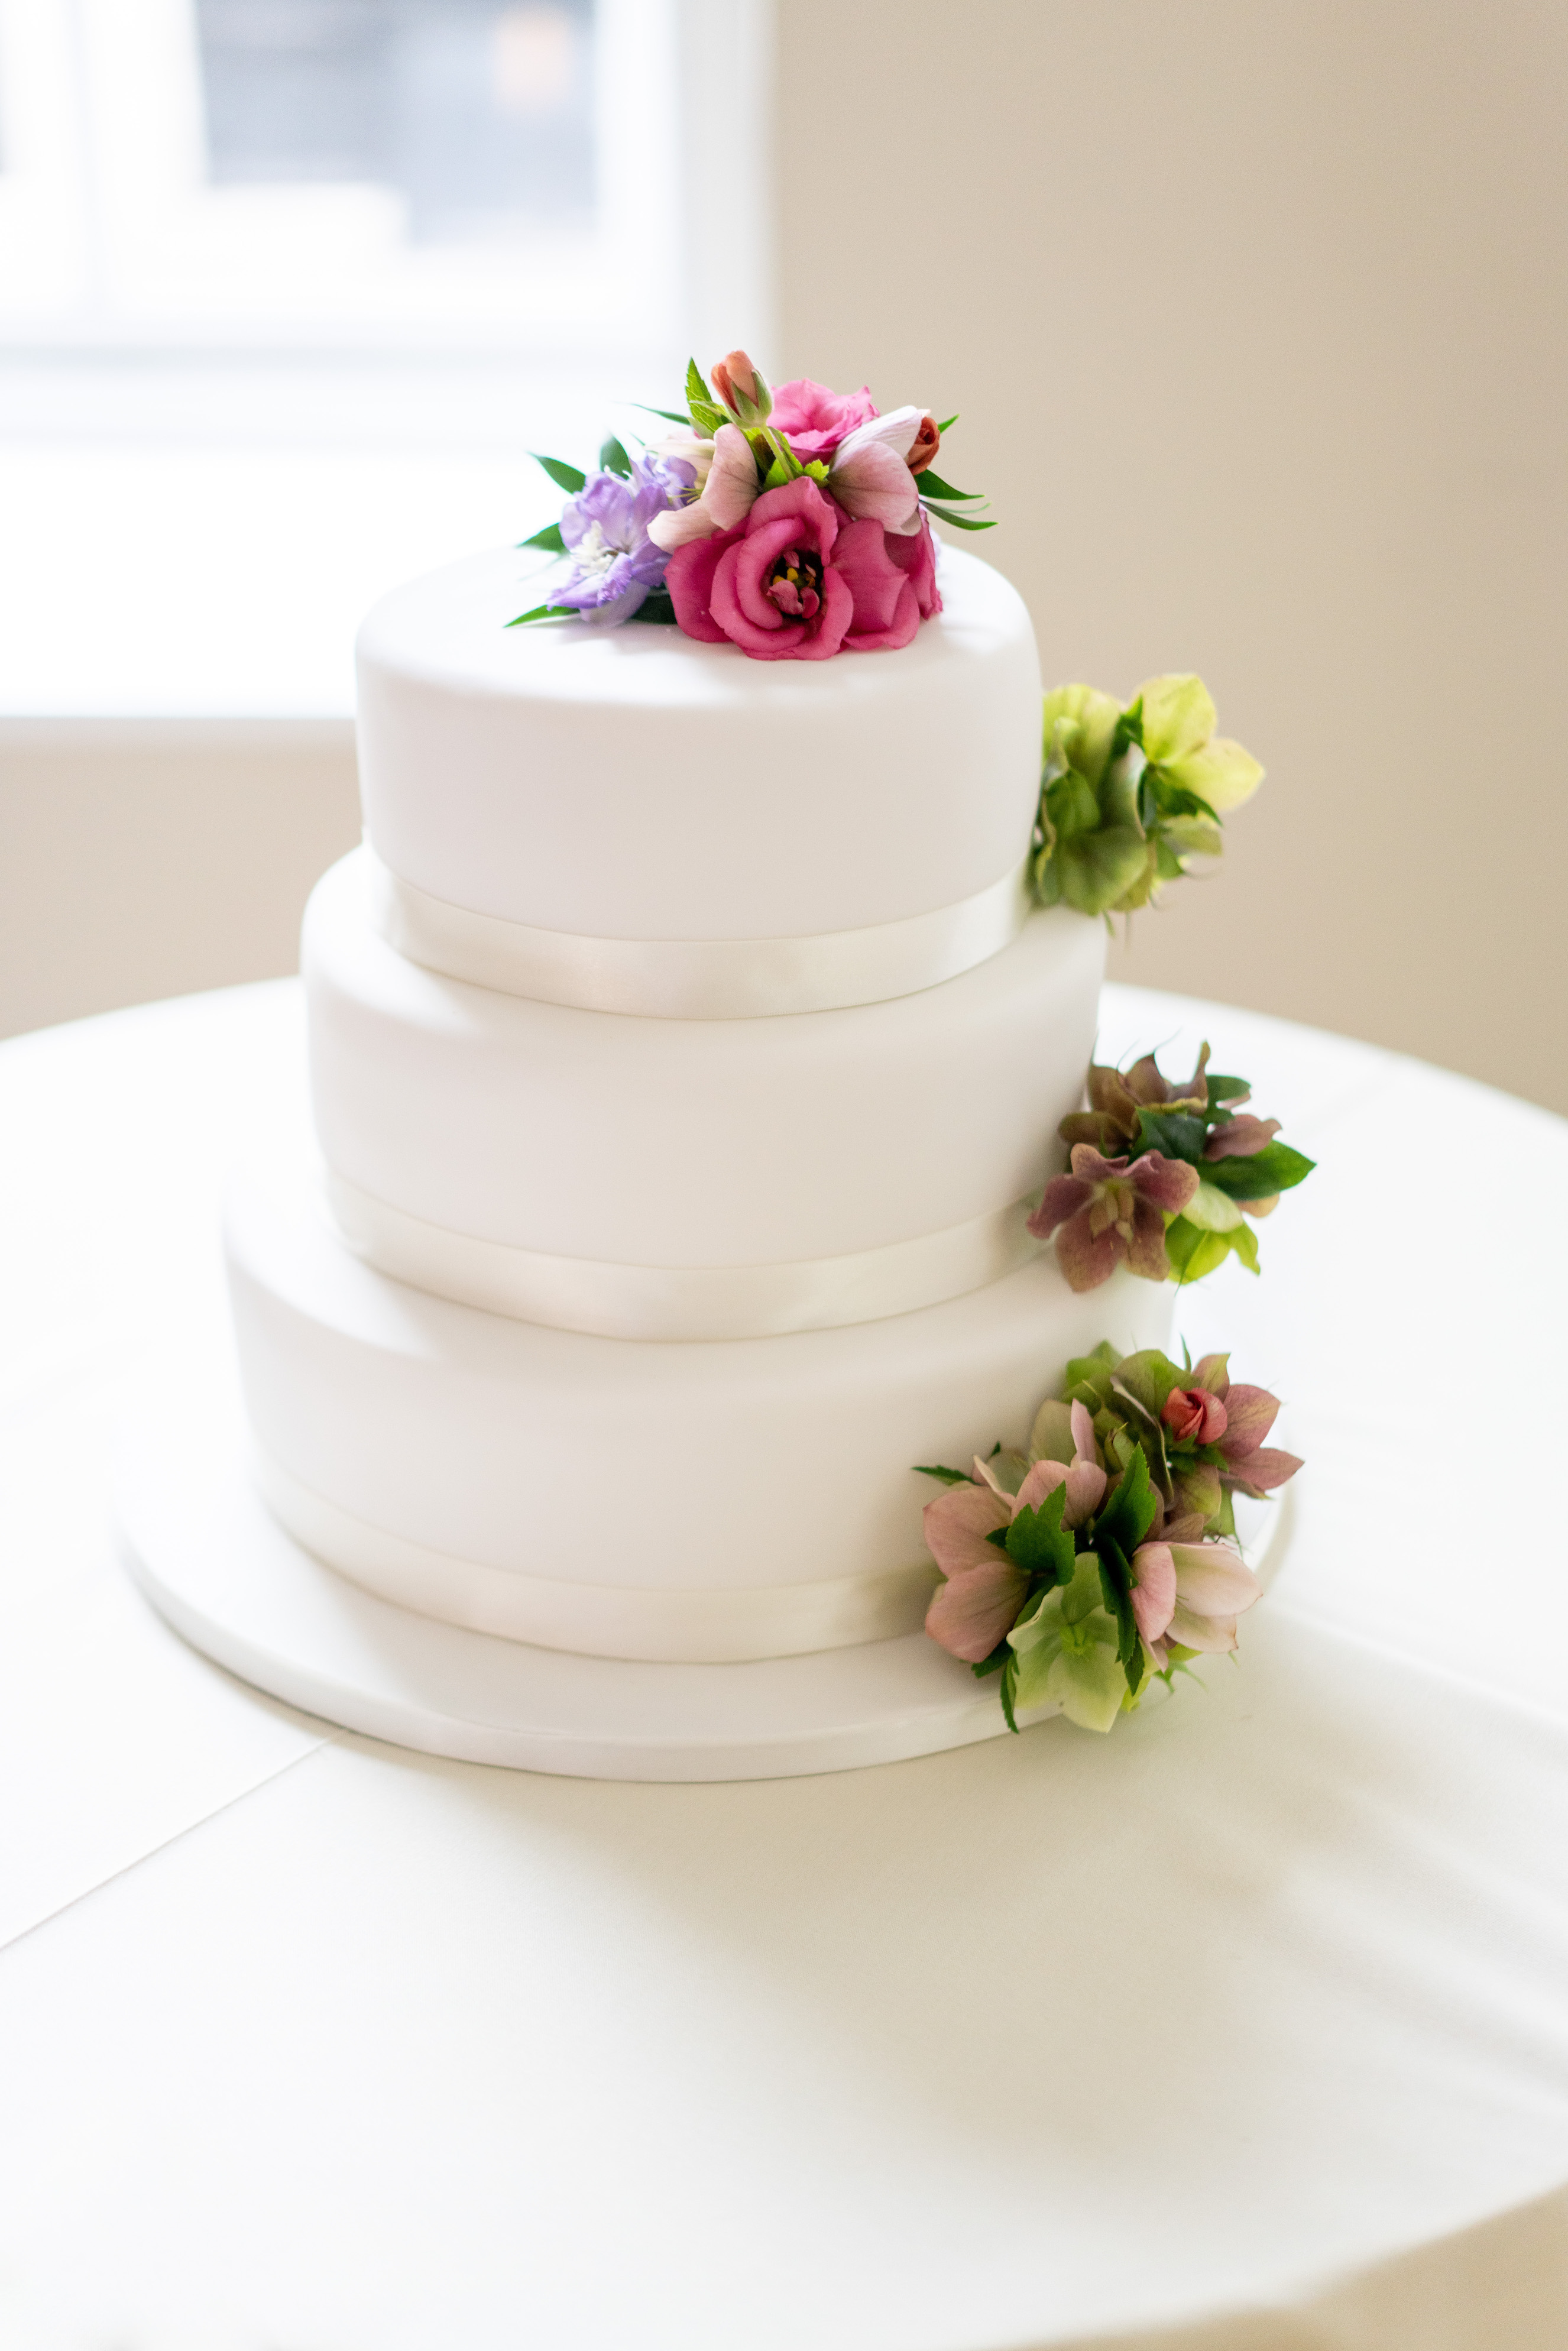 Subtle wedding cake decorations with pink eustomas and green hellebores